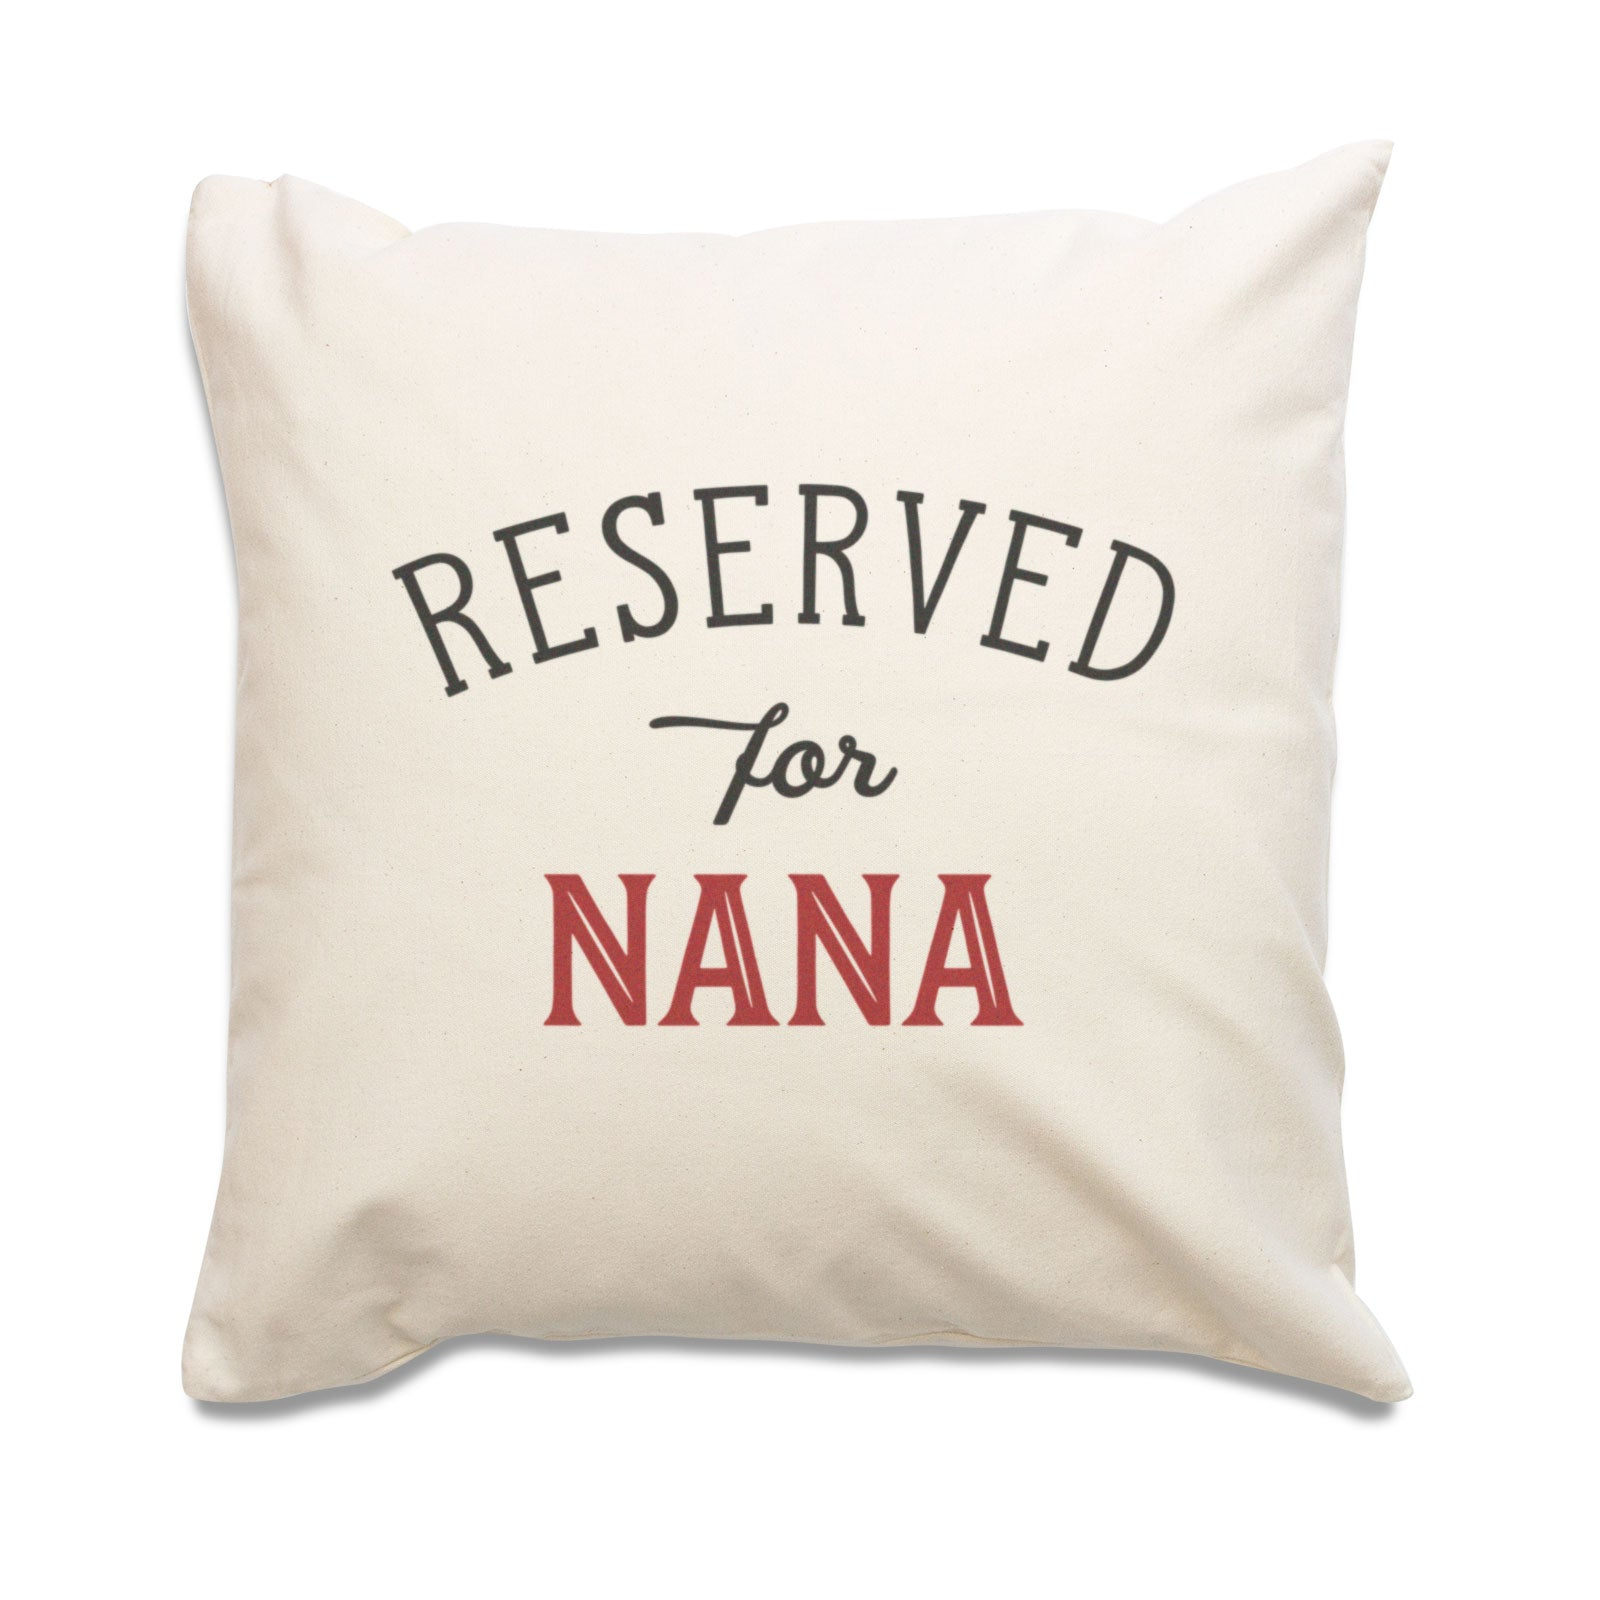 Reserved for Nana Cushion Cover